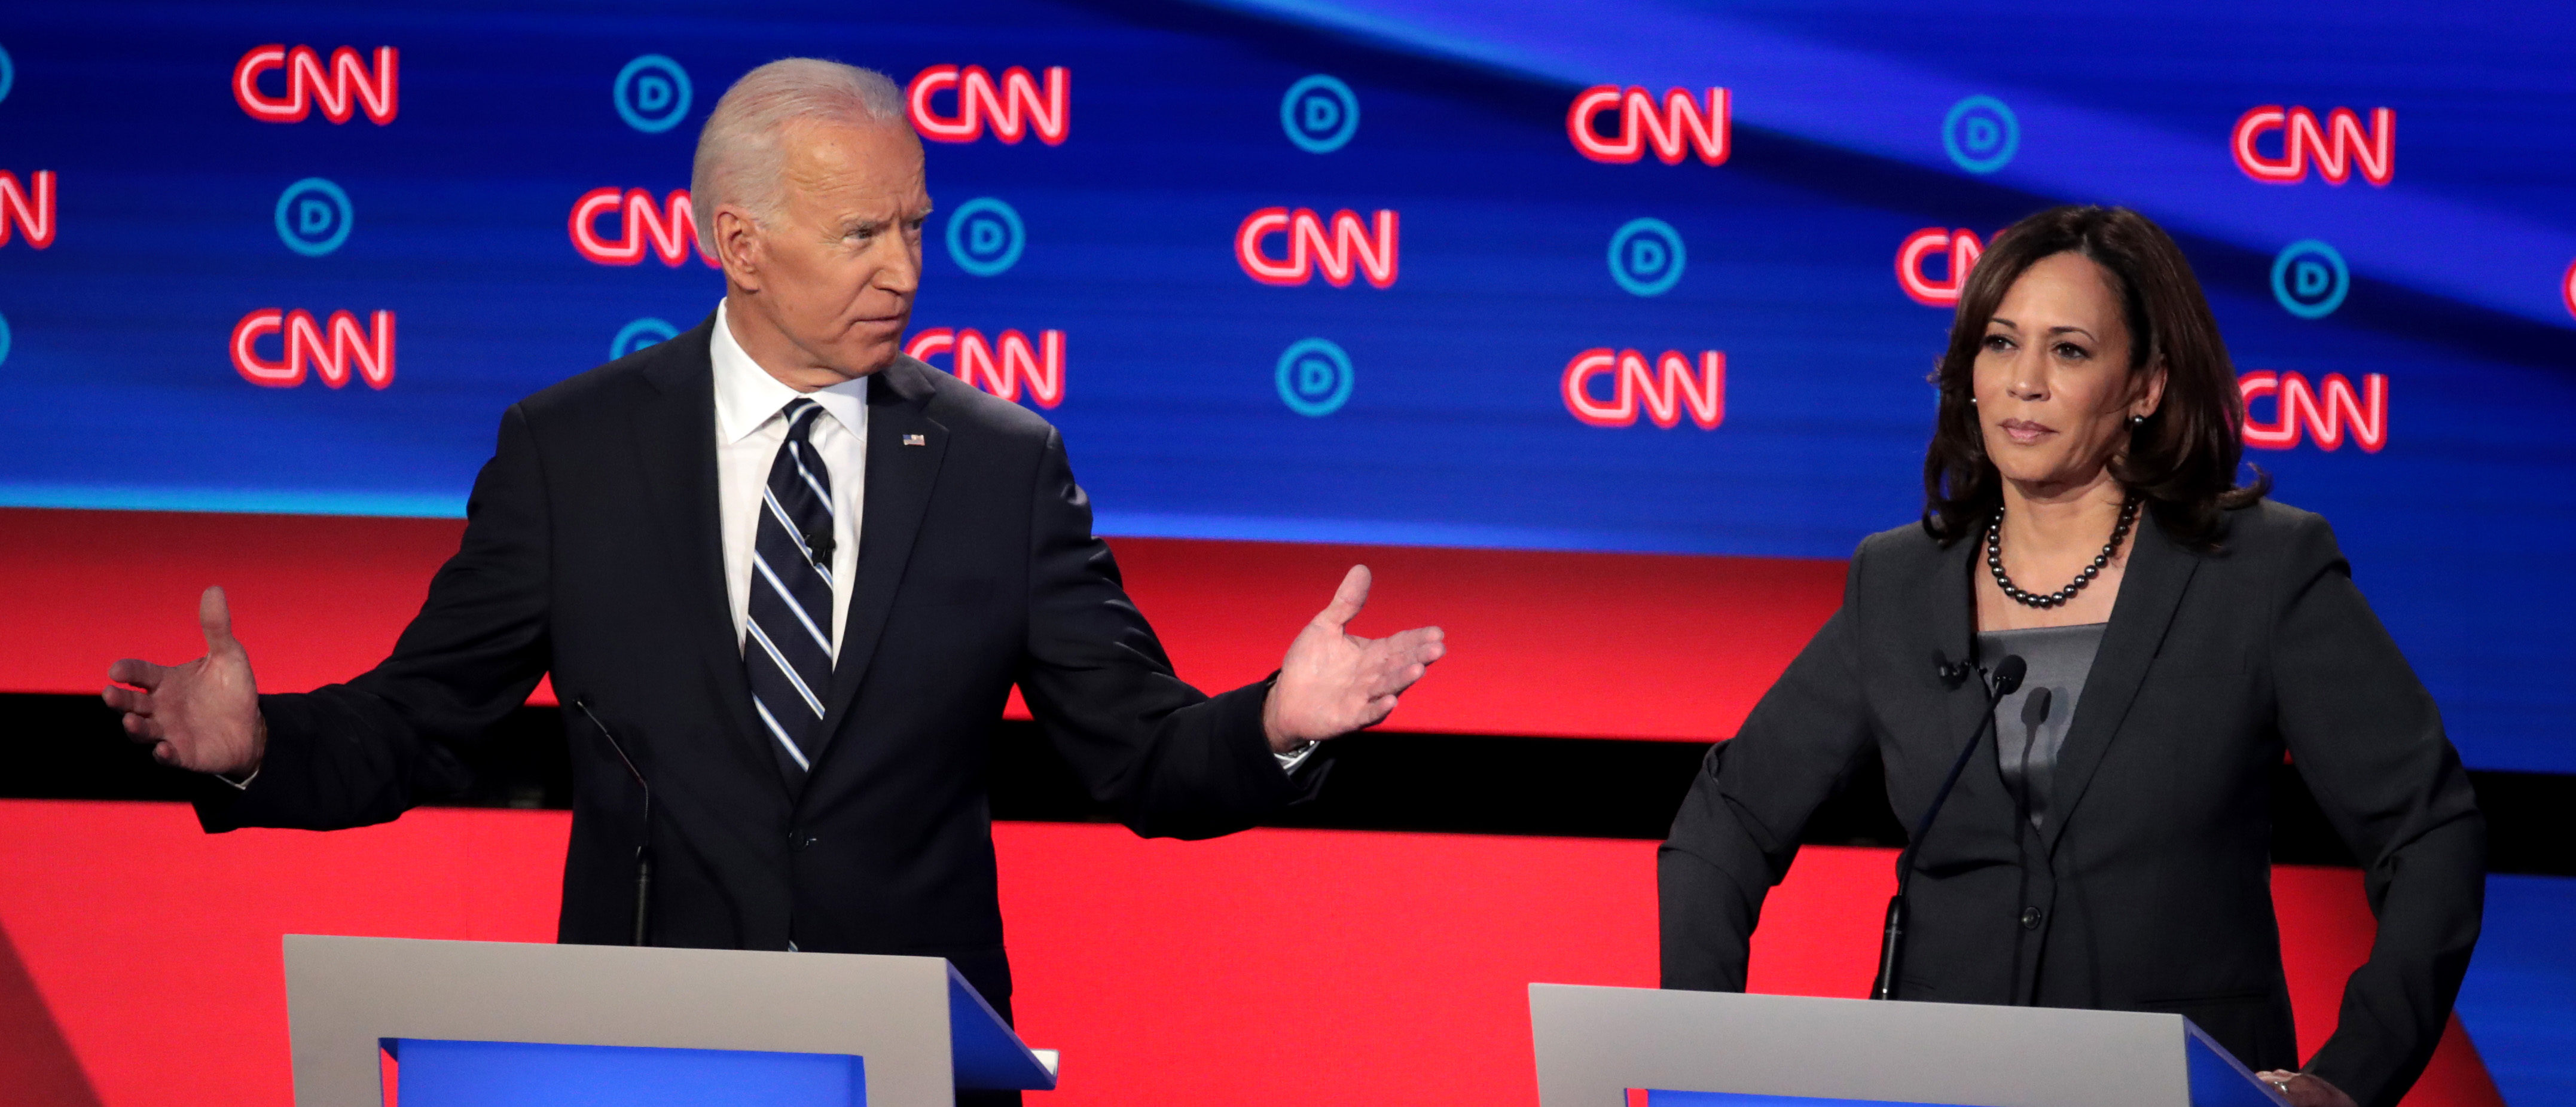 DETROIT, MICHIGAN - JULY 31: Democratic presidential candidate former Vice President Joe Biden (L) and Sen. Kamala Harris (D-CA) during the Democratic Presidential Debate at the Fox Theatre July 31, 2019 in Detroit, Michigan. 20 Democratic presidential candidates were split into two groups of 10 to take part in the debate sponsored by CNN held over two nights at Detroit's Fox Theatre. (Photo by Scott Olson/Getty Images)